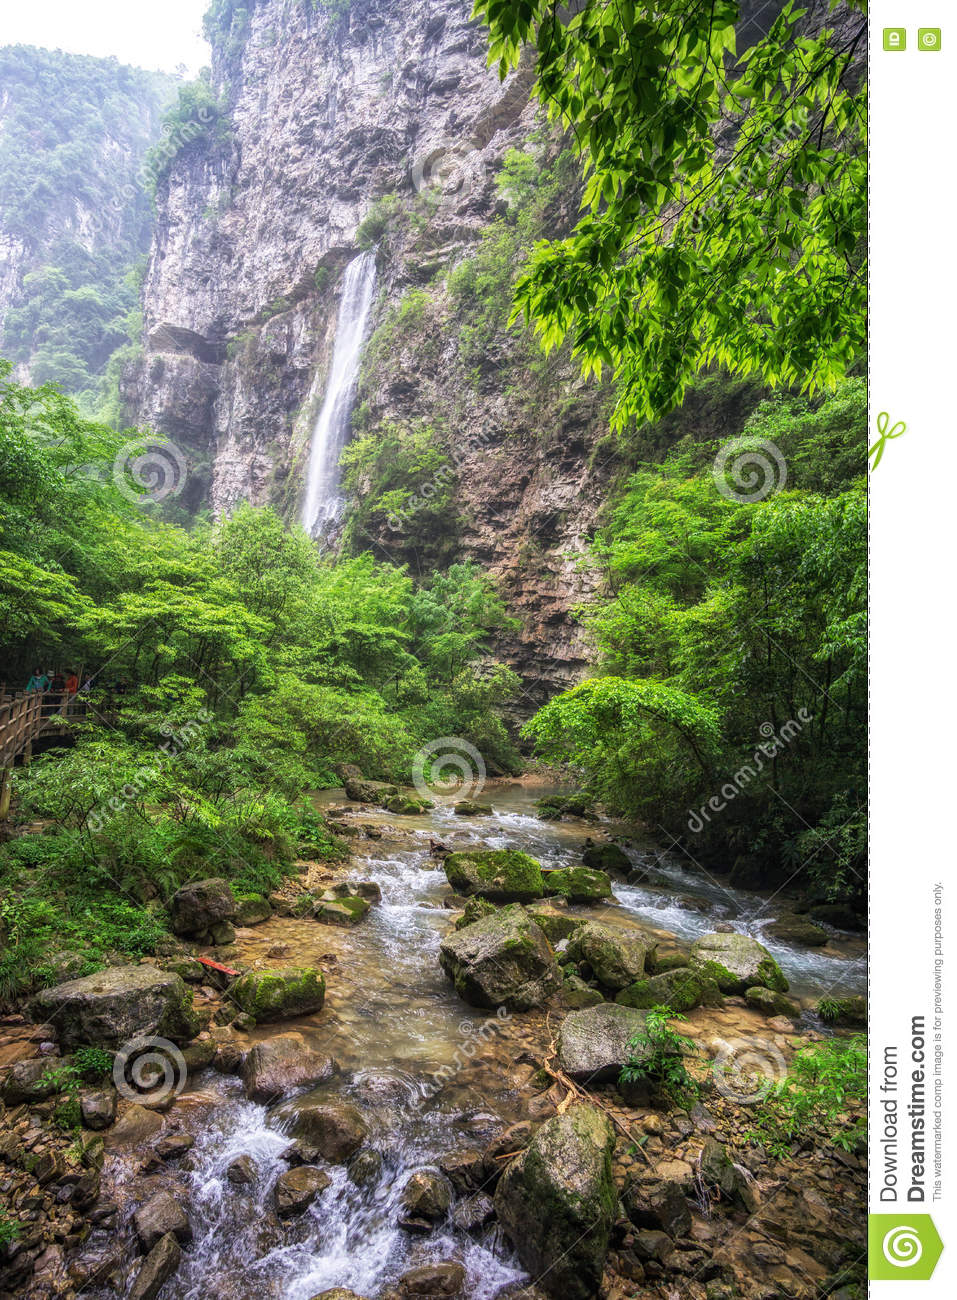 Chute Grand Canyon waterfall view in zhangjiajie grand canyon stock image - image of